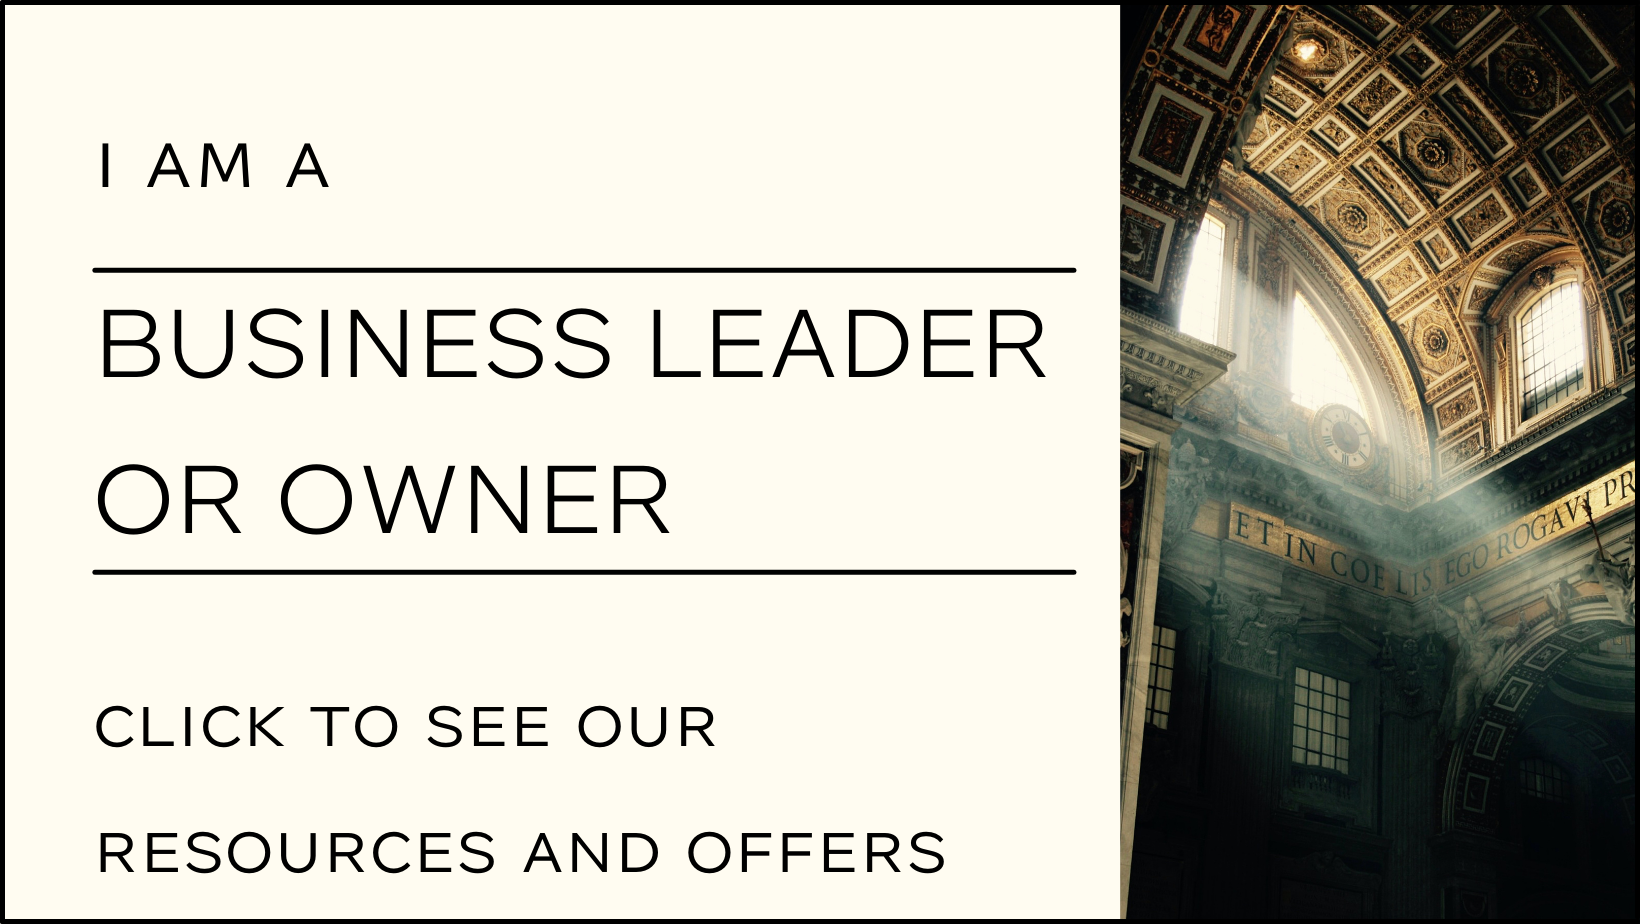 Writing Resources for Business Leaders and Owners